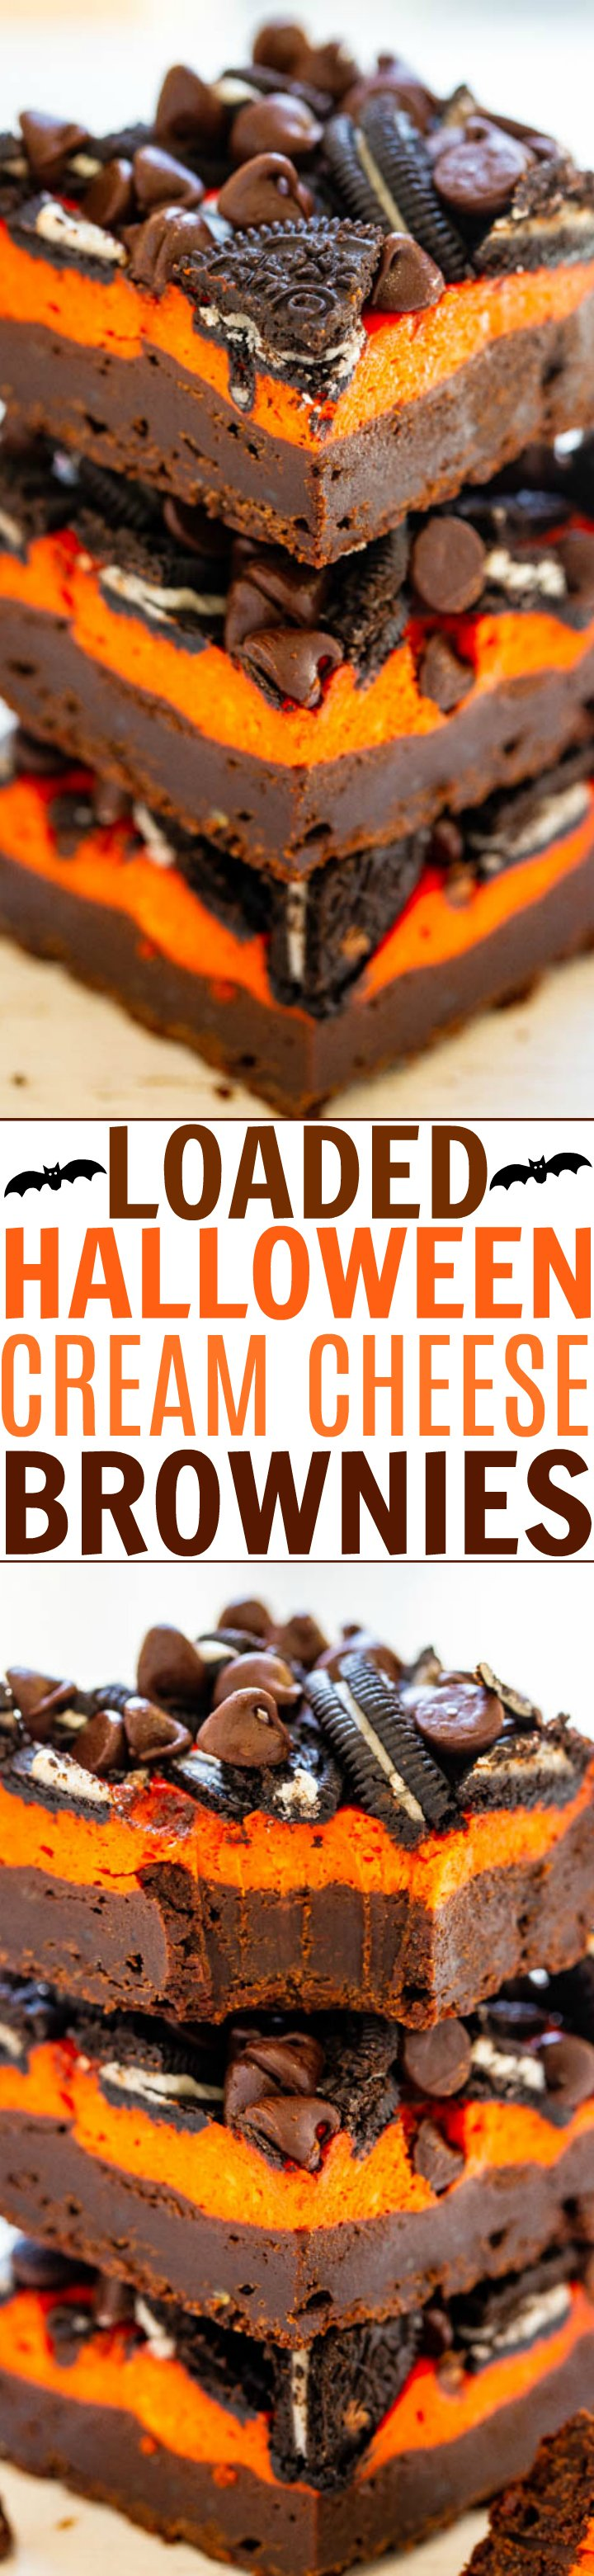 Loaded Halloween Cream Cheese Brownies - Ultra fudgy, rich brownies topped with a layer of orange cream cheese, sandwich cookies, and chocolate chips!! The perfect EASY Halloween treat that everyone will love!!